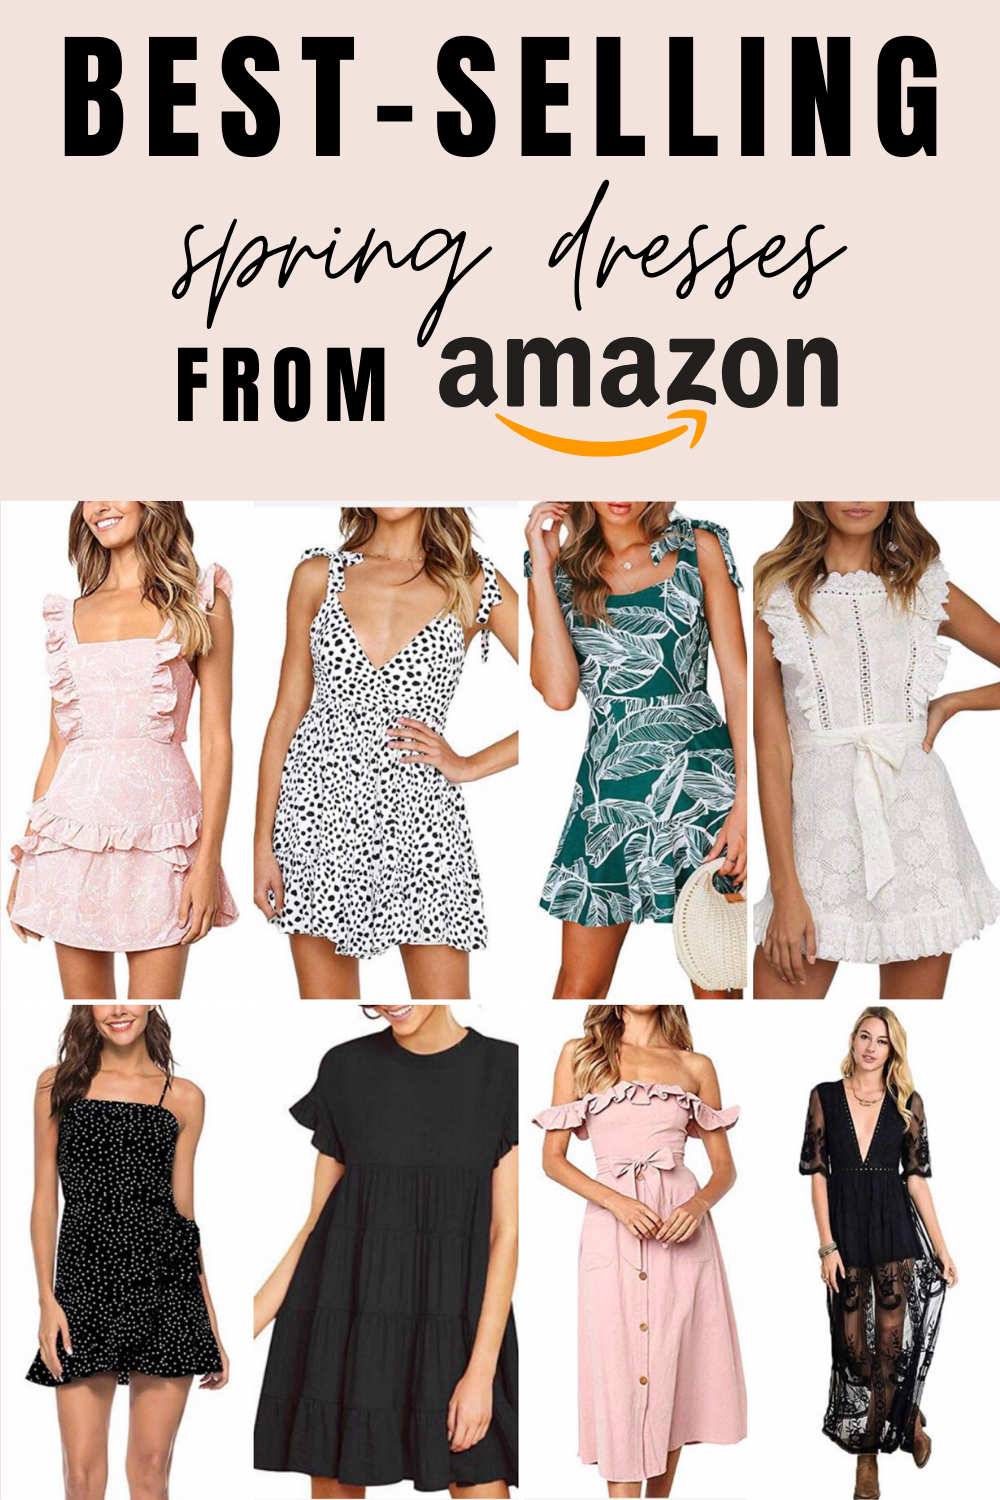 Best Selling Spring Dresses From Amazon Best Amazon Dresses For Spring In 2020 Amazon Dresses Summer Dresses Trendy Spring Outfits